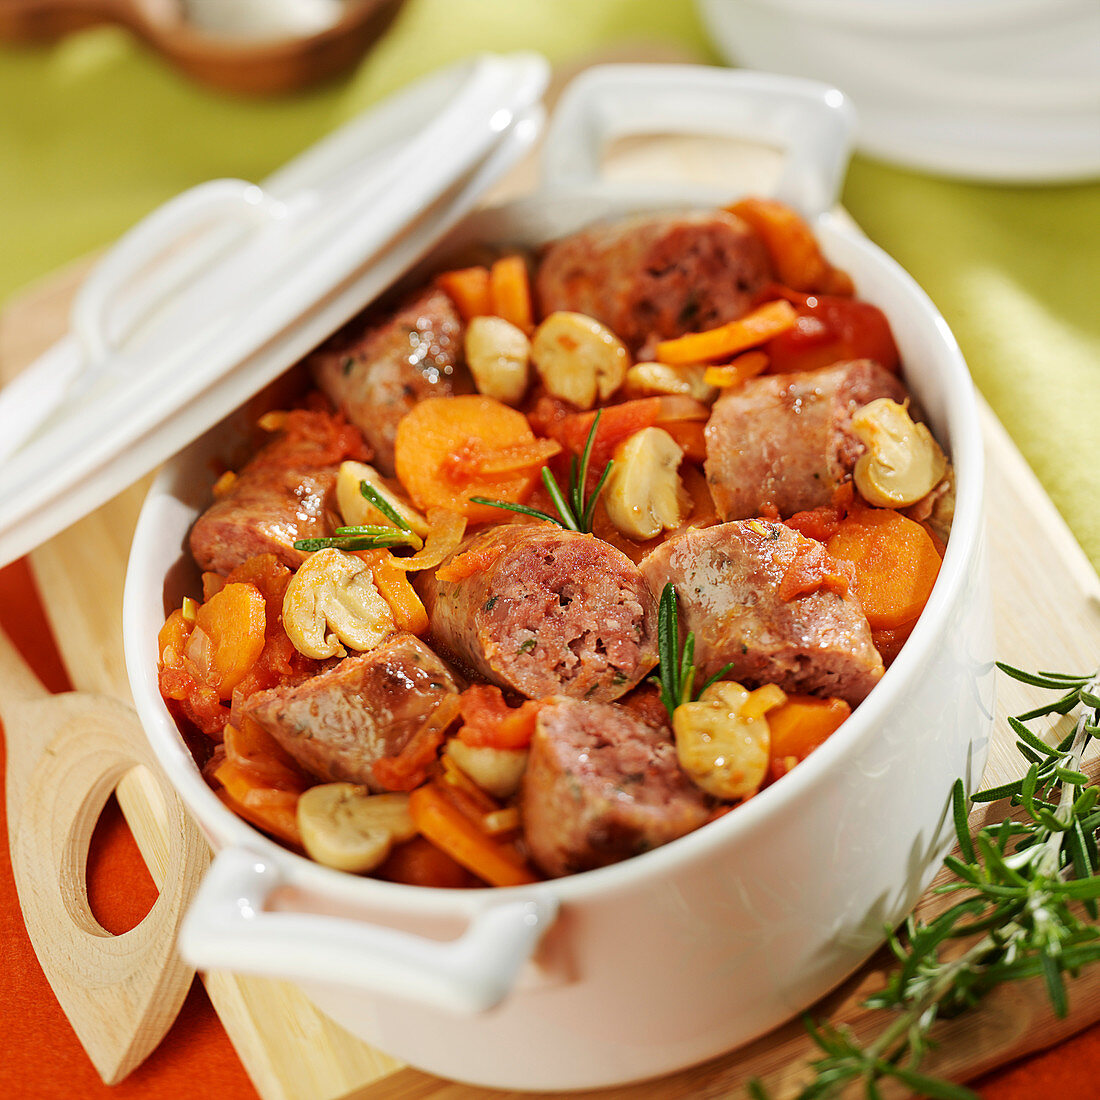 Simmered saucisses de Toulouse ,carrots and tomatoes